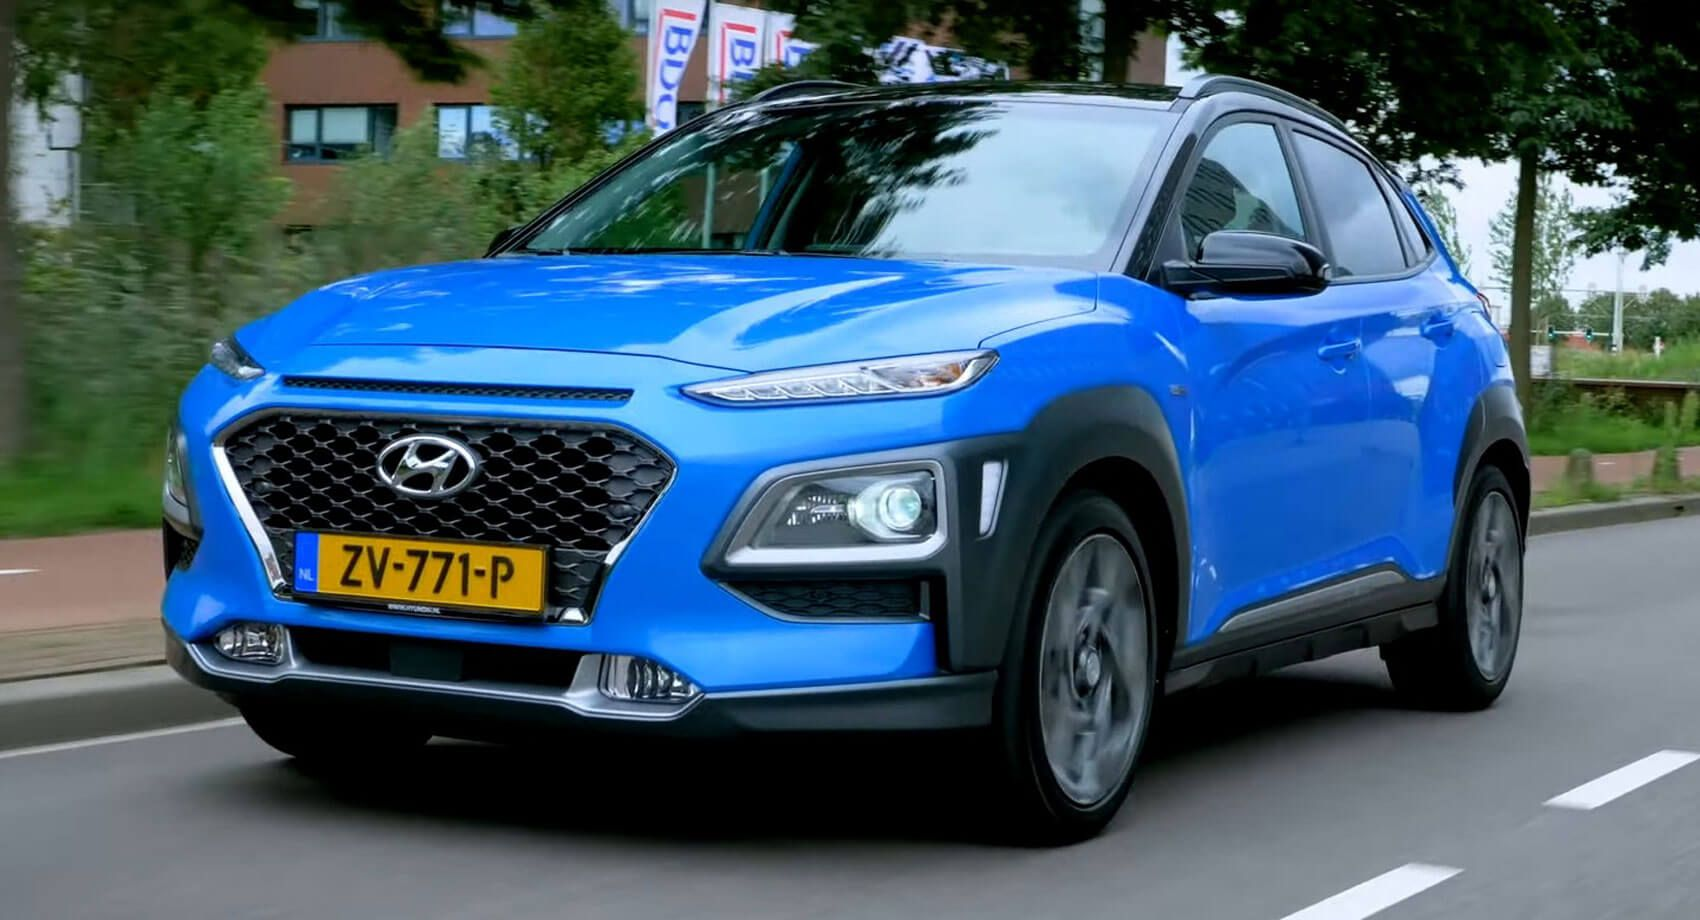 Hyundai Kona Hybrid Is A Funky Looking Small Suv With An Electric Touch